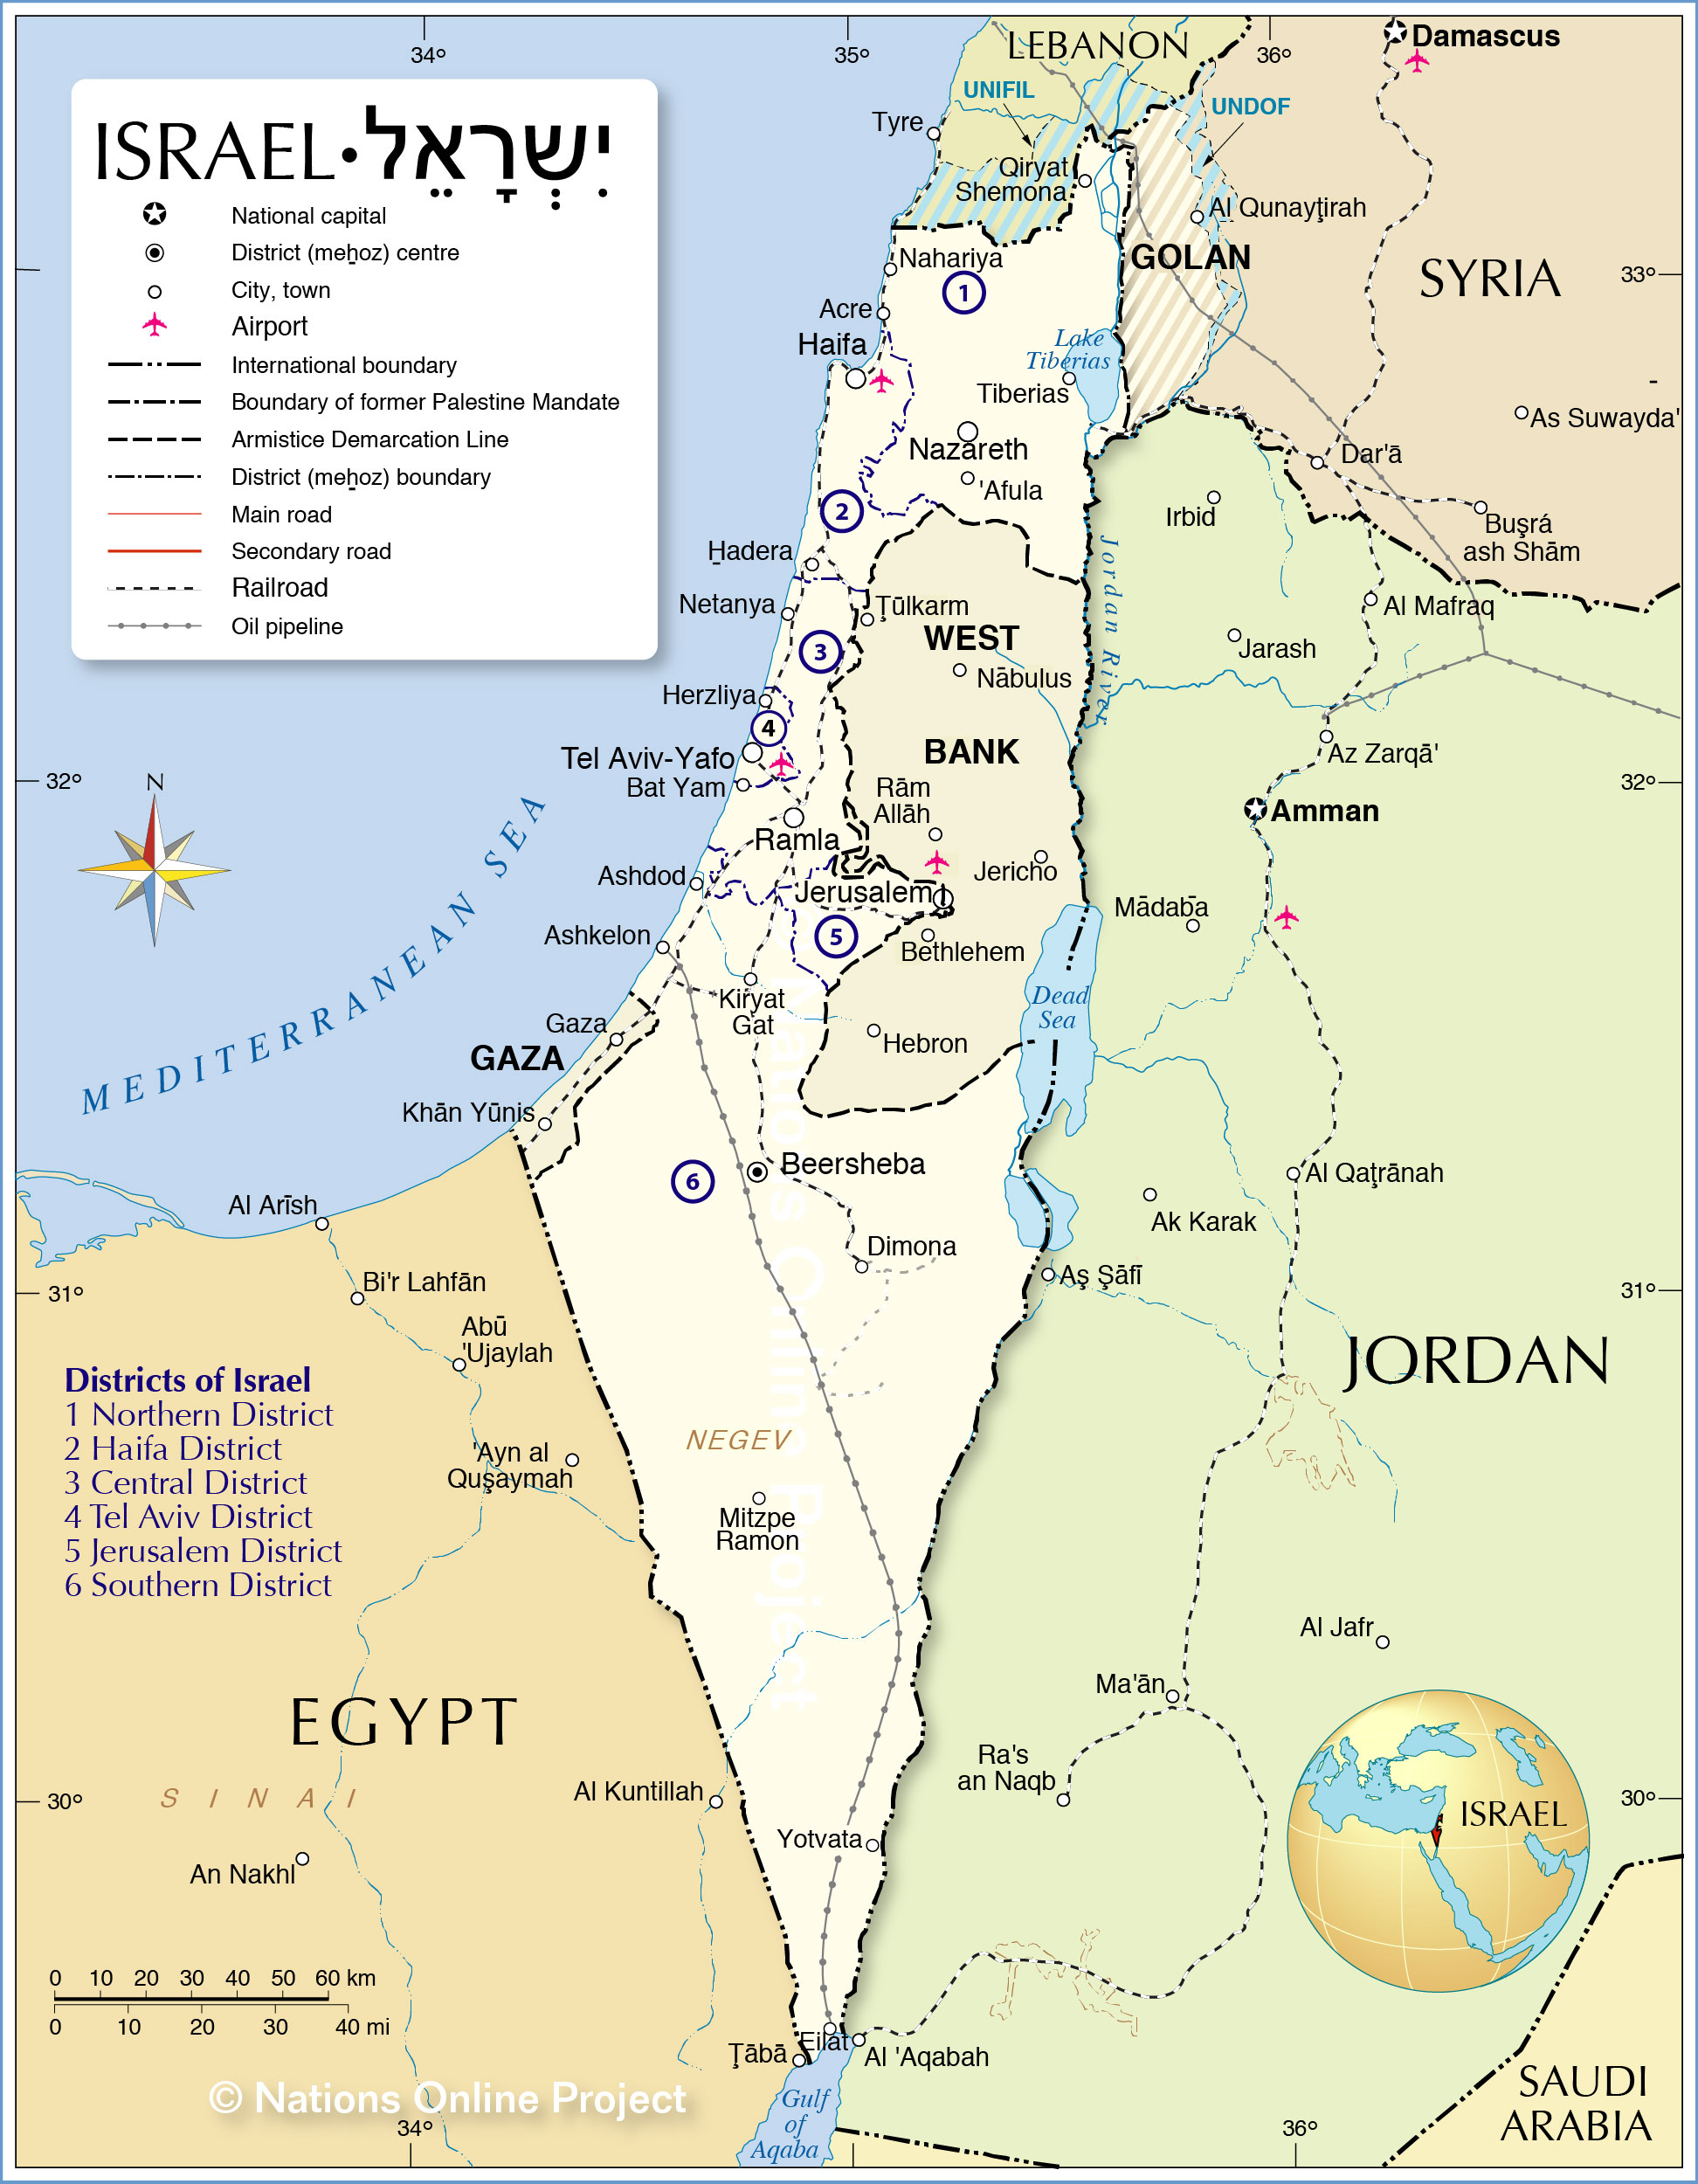 Political Map Of Israel Nations Online Project